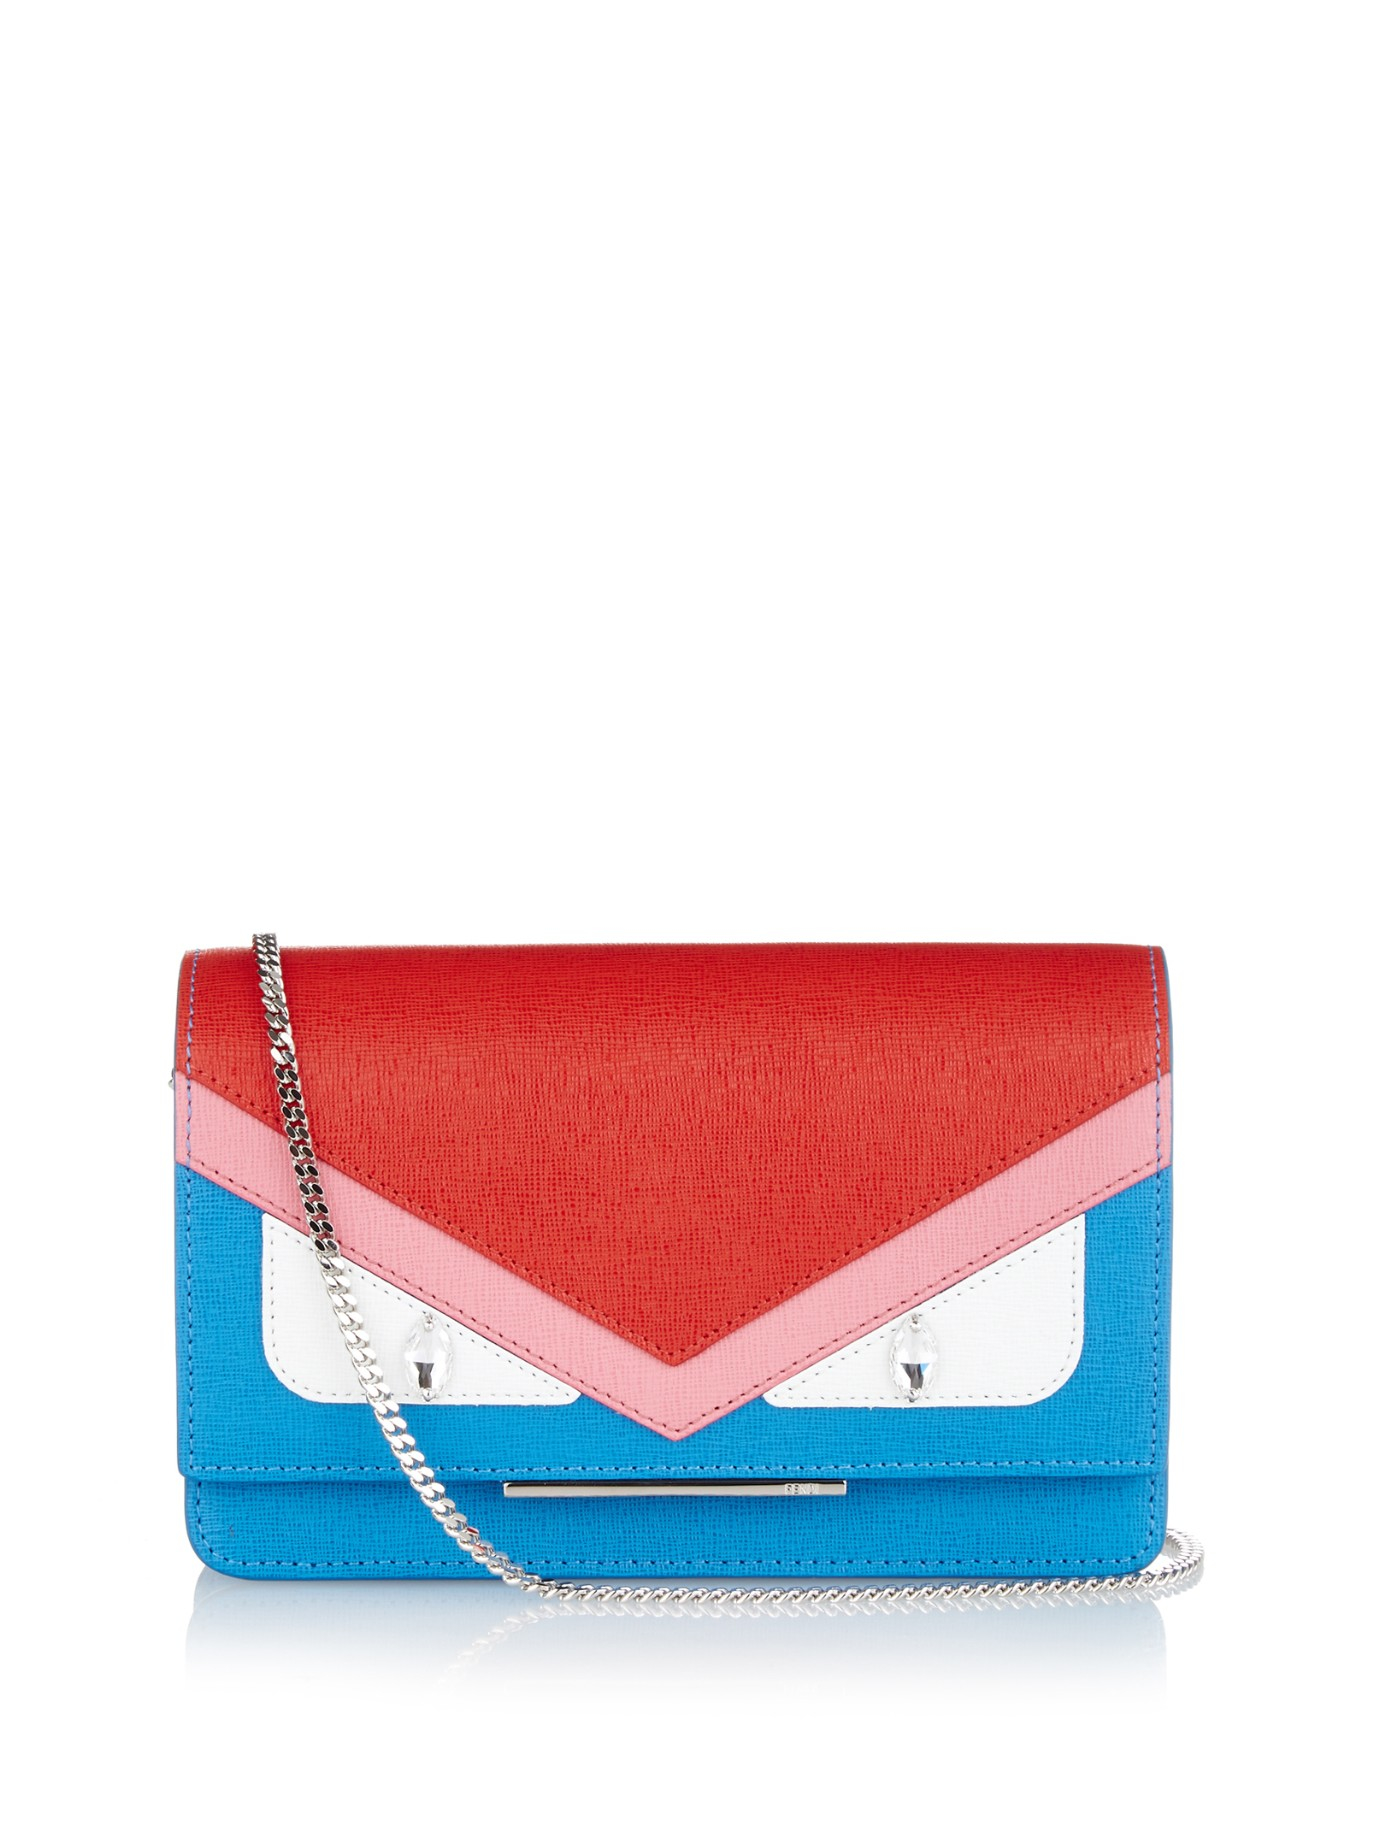 Particular Discount Sale Fendi Bag Bugs shoulder bag Cheap Low Shipping Fee Latest etwR0n